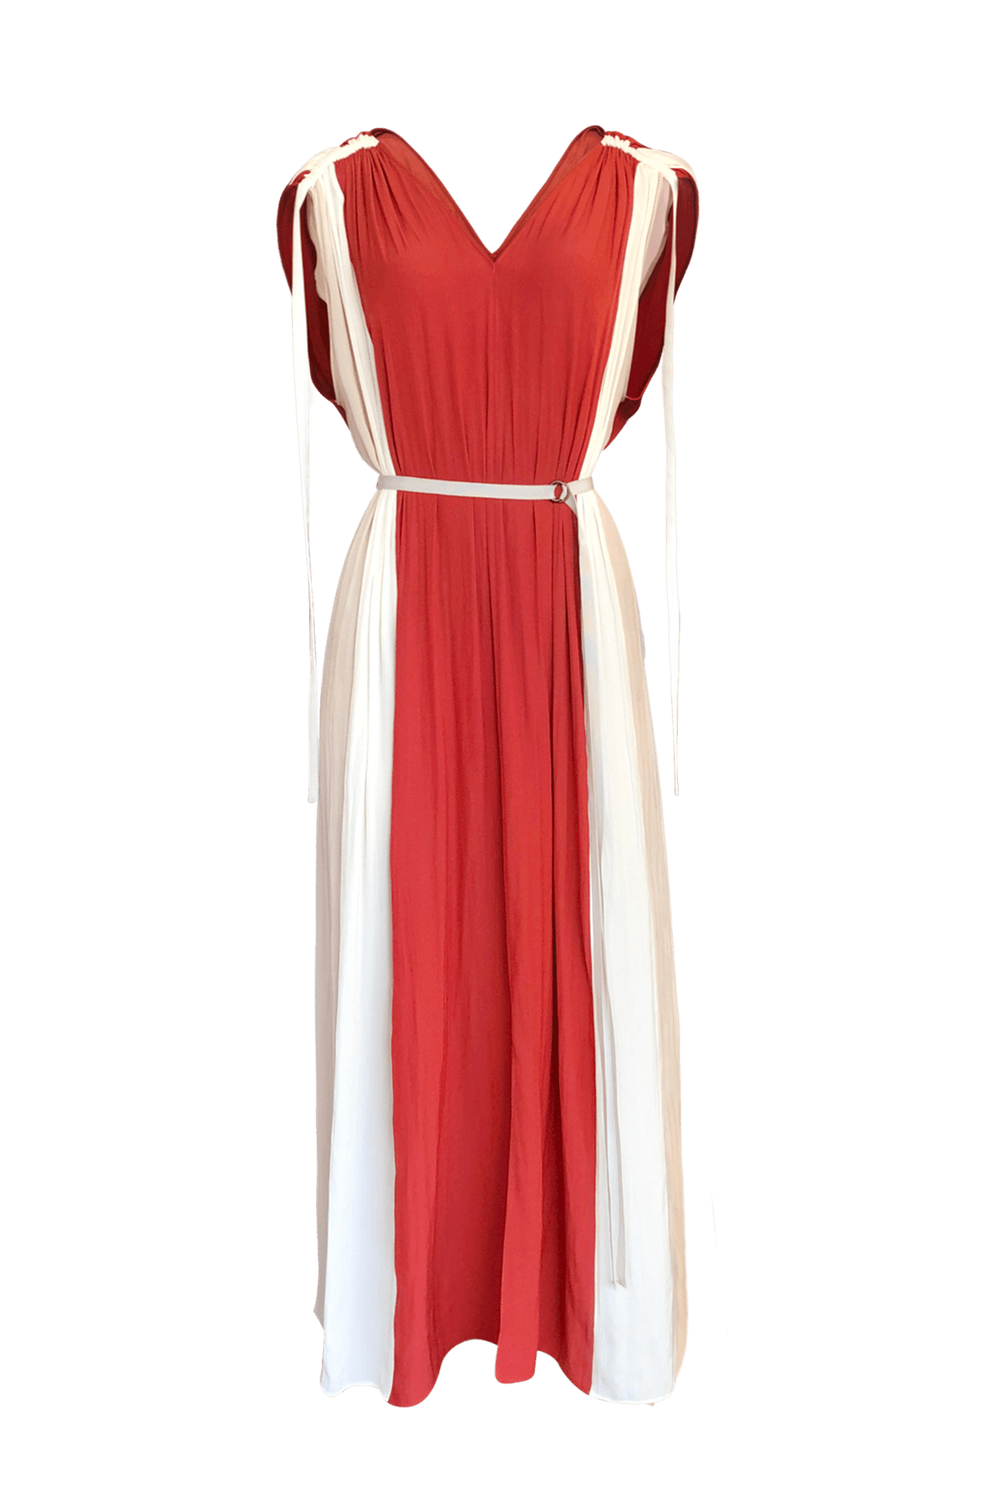 Fashion Designer CARL KAPP collection | Bel Air Onesize Fits All Dress Red | Sydney Australia